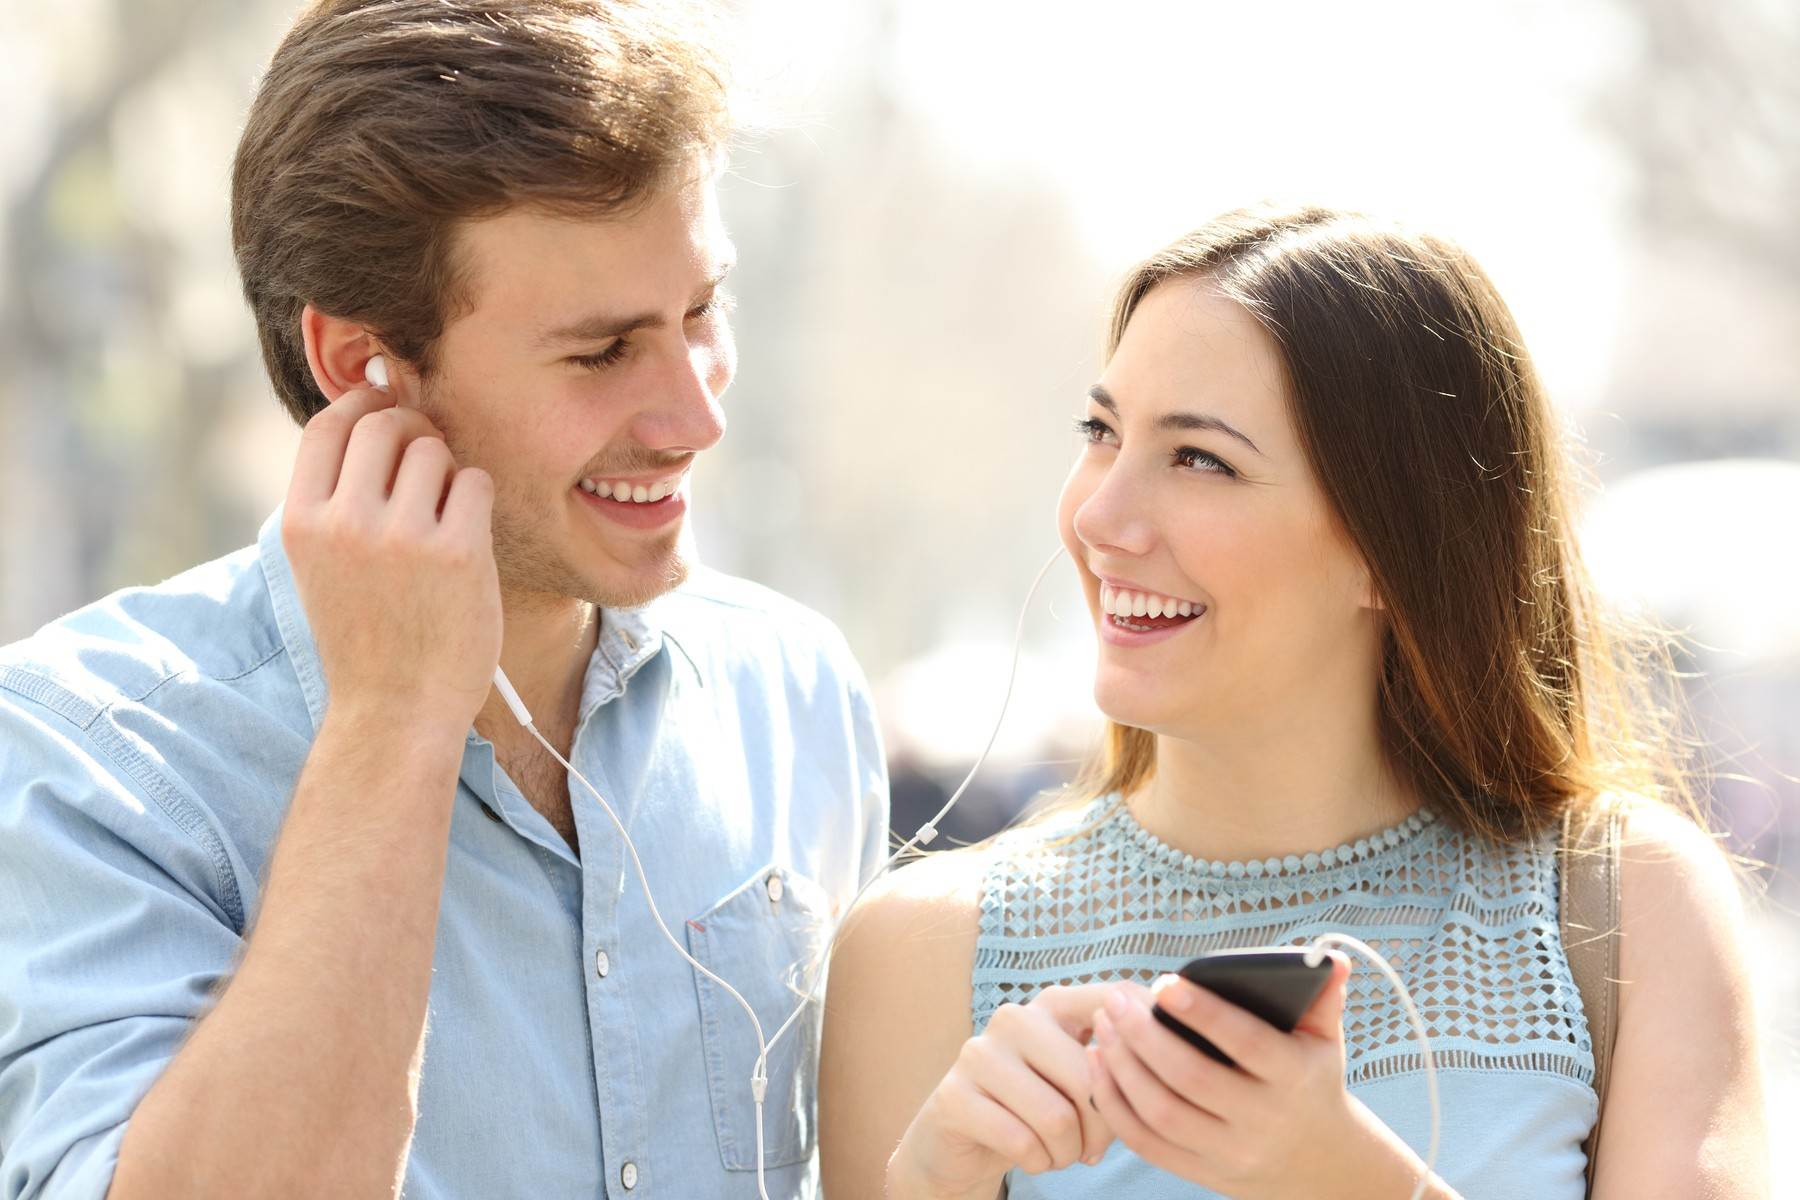 music;listen;listening;couple;headphones;earphones;phone;mobile;friends;people;smartphone;ear;happy;enjoying;love;song;teens;flirting;date;dating;girl;sharing;shared;using;earbuds;hearing;man;share;outdoor;lifestyle;facing;looking;each;other;funny;buds;young;city;street;urban;family;woman;laughing;outside;streaming;showing;flirt;falling;inlove;romance;boy;romantic;cell;cellphone;smart;sound;audio;adults;2;fun;teenagers;teenage;front;view;musical;meeting;cellular;walking;downloading;checking